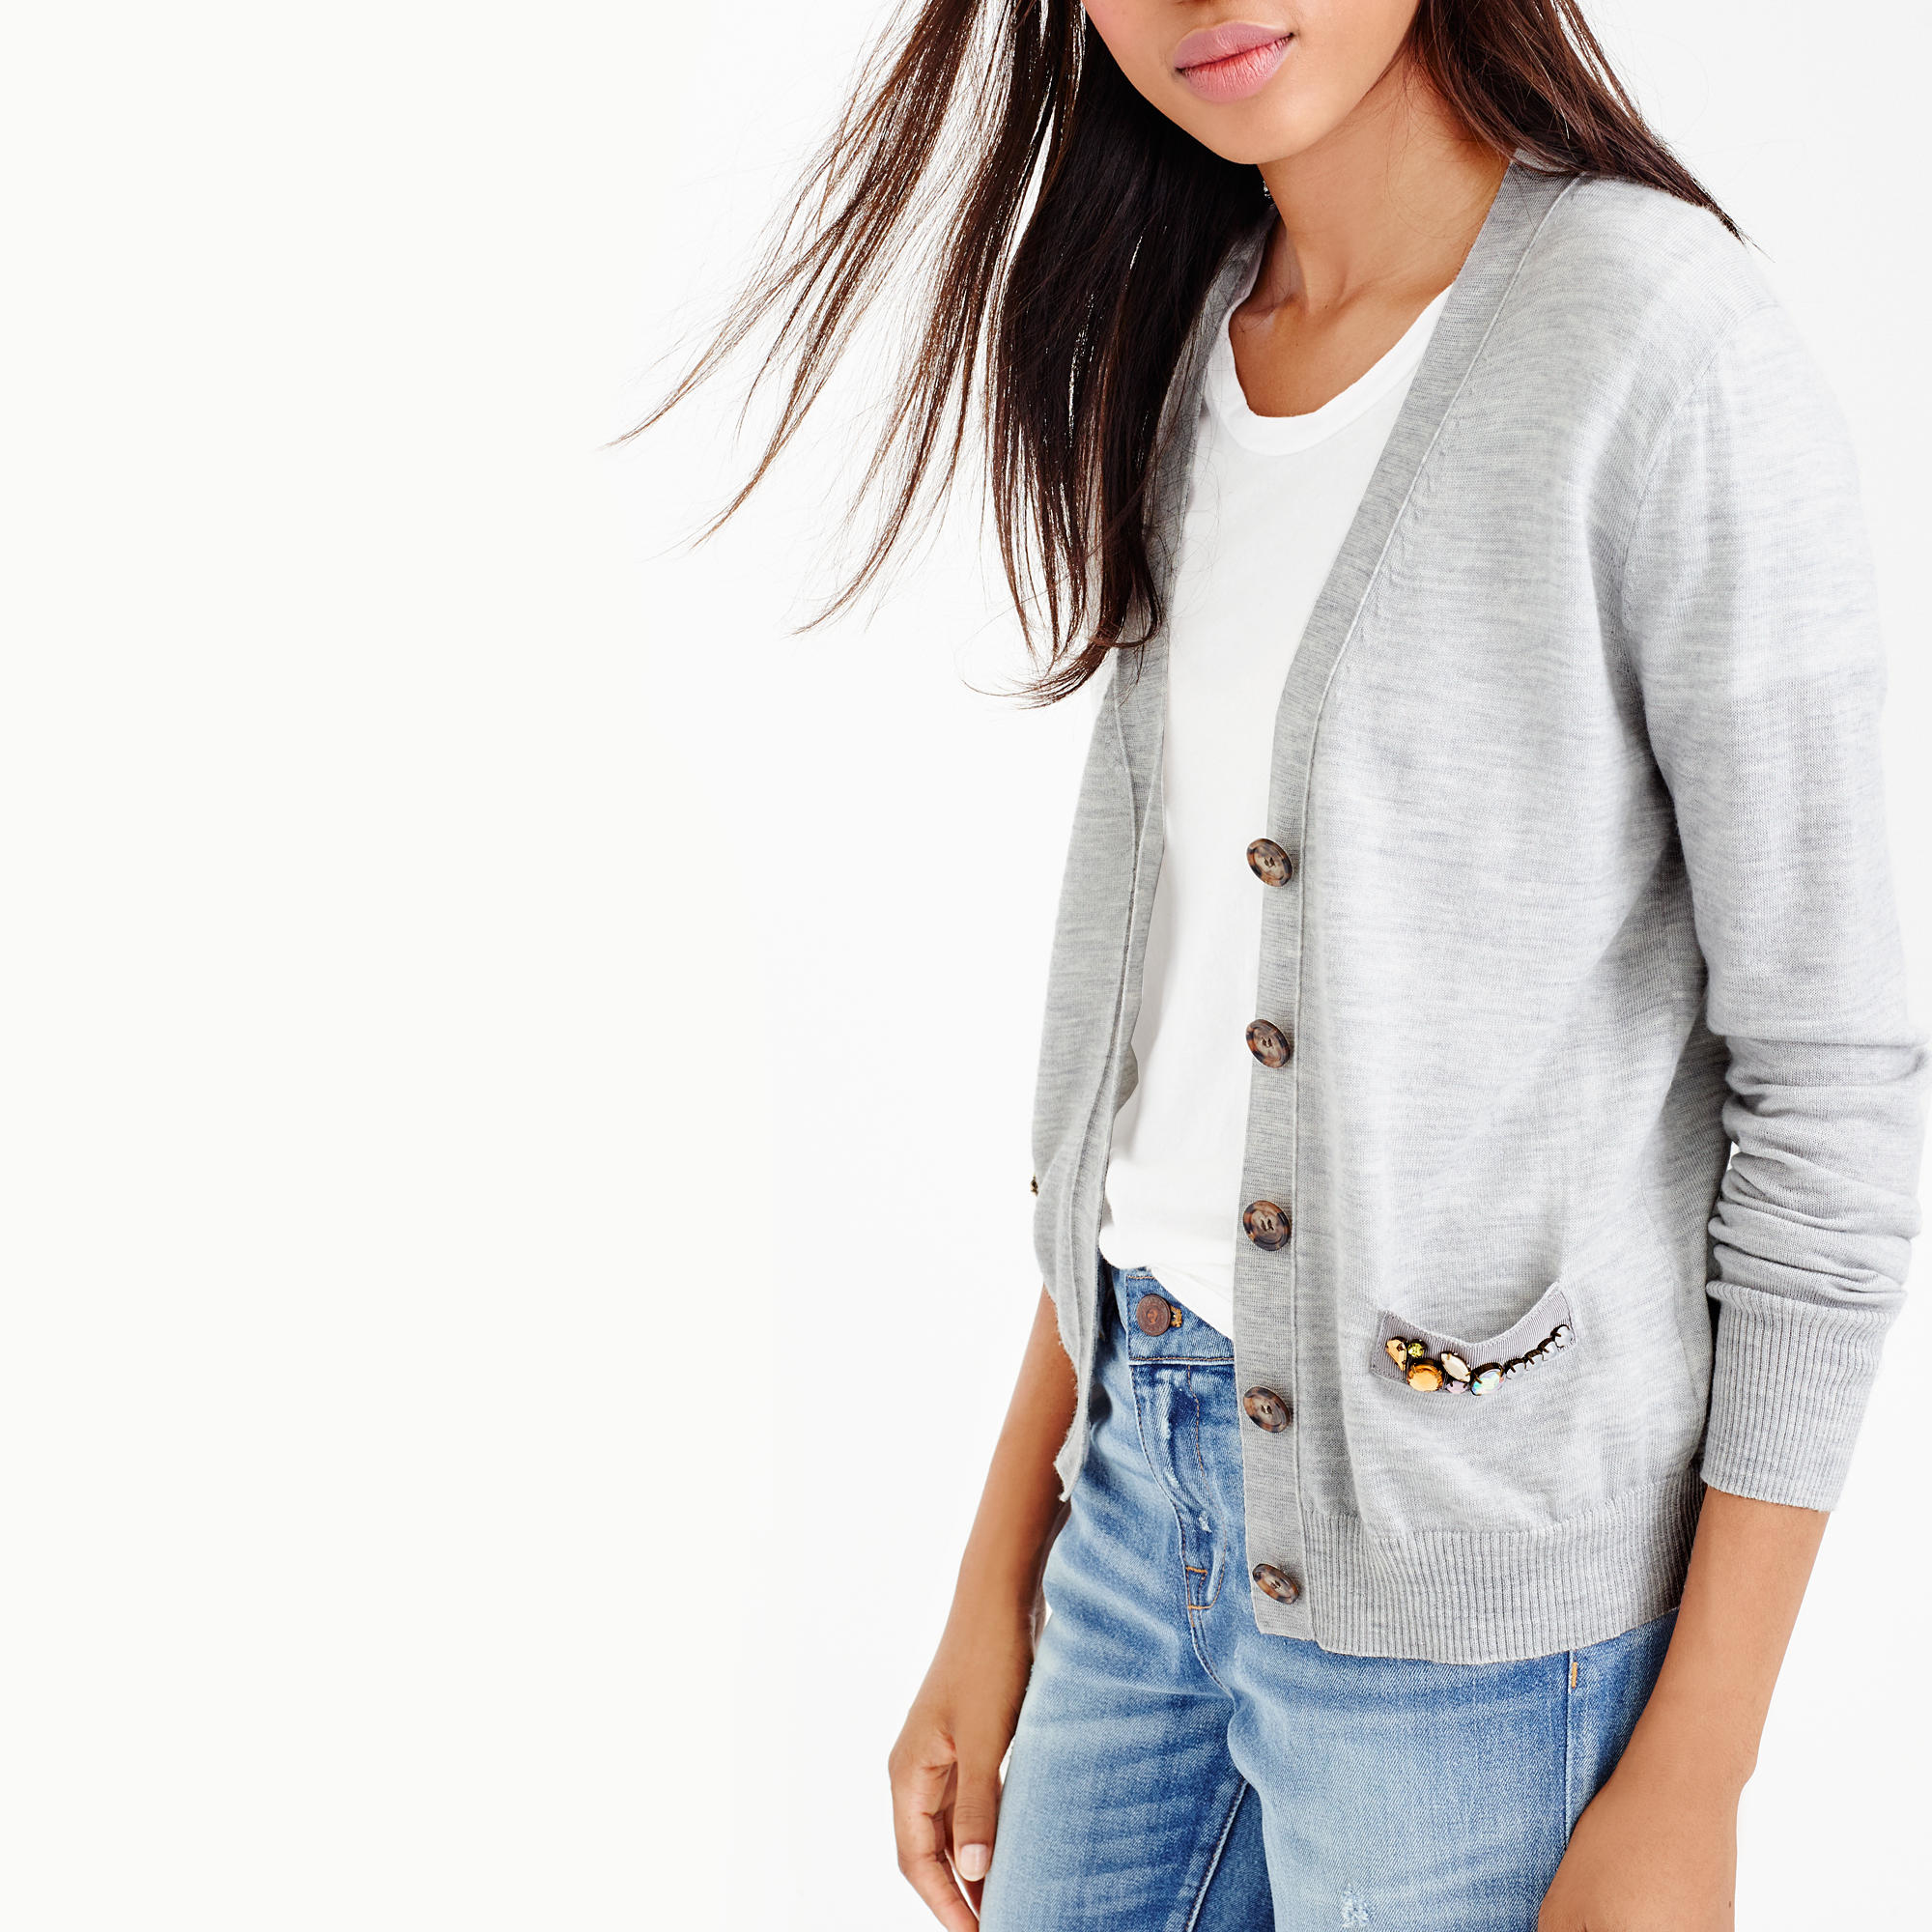 J.crew V-neck Cardigan Sweater With Embellished Pocket in Gray | Lyst